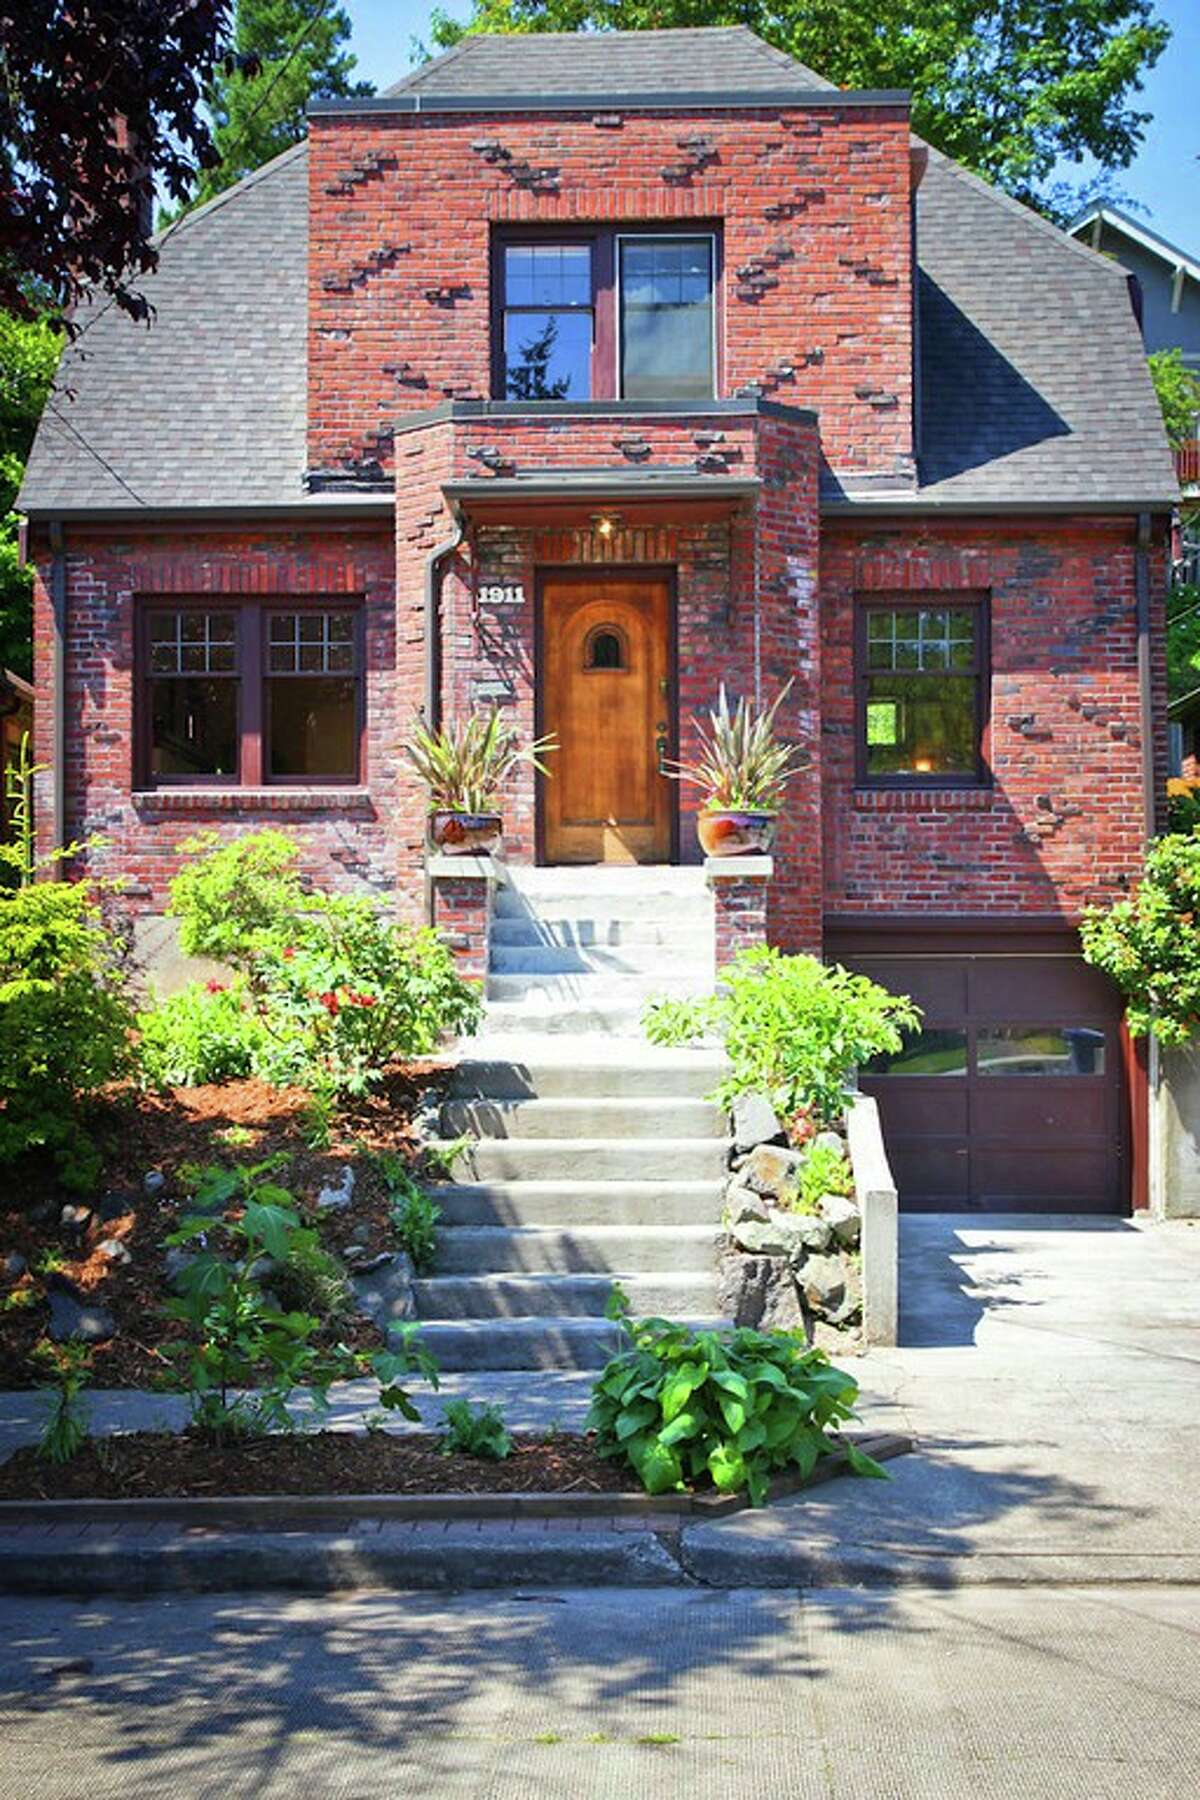 Montlake is a gorgeous Seattle neighborhood tucked between Capitol Hill, Washington Park Arboretum, Portage Bay, Union Bay and the University of Washington. Here are three 1920s homes listed there for less than $700,000, starting with 1911 26th Ave. E. The 2,800-square-foot brick house, built in 1929, has three bedrooms, 1.5 bathrooms, Mahogany millwork and doors, a media/game room, a basement office, a patio and a garden on a 3,880-square-foot lot. It's listed for $675,000.